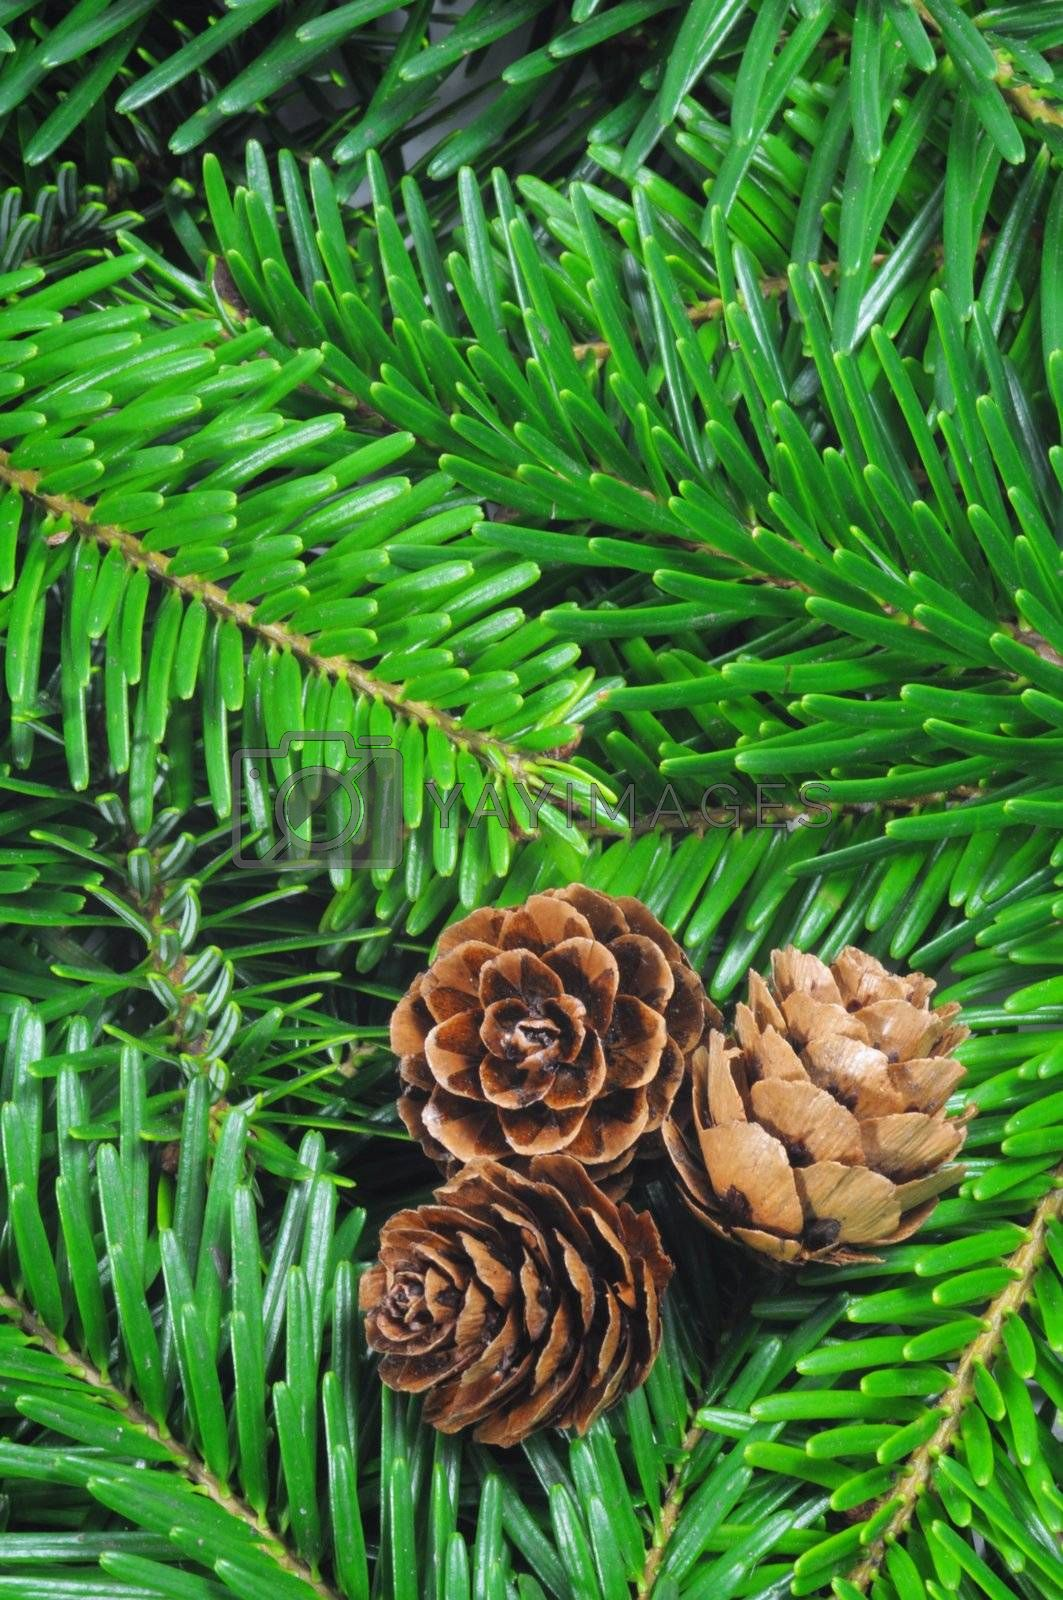 green fir from a xmas or christmas tree can be uses as background